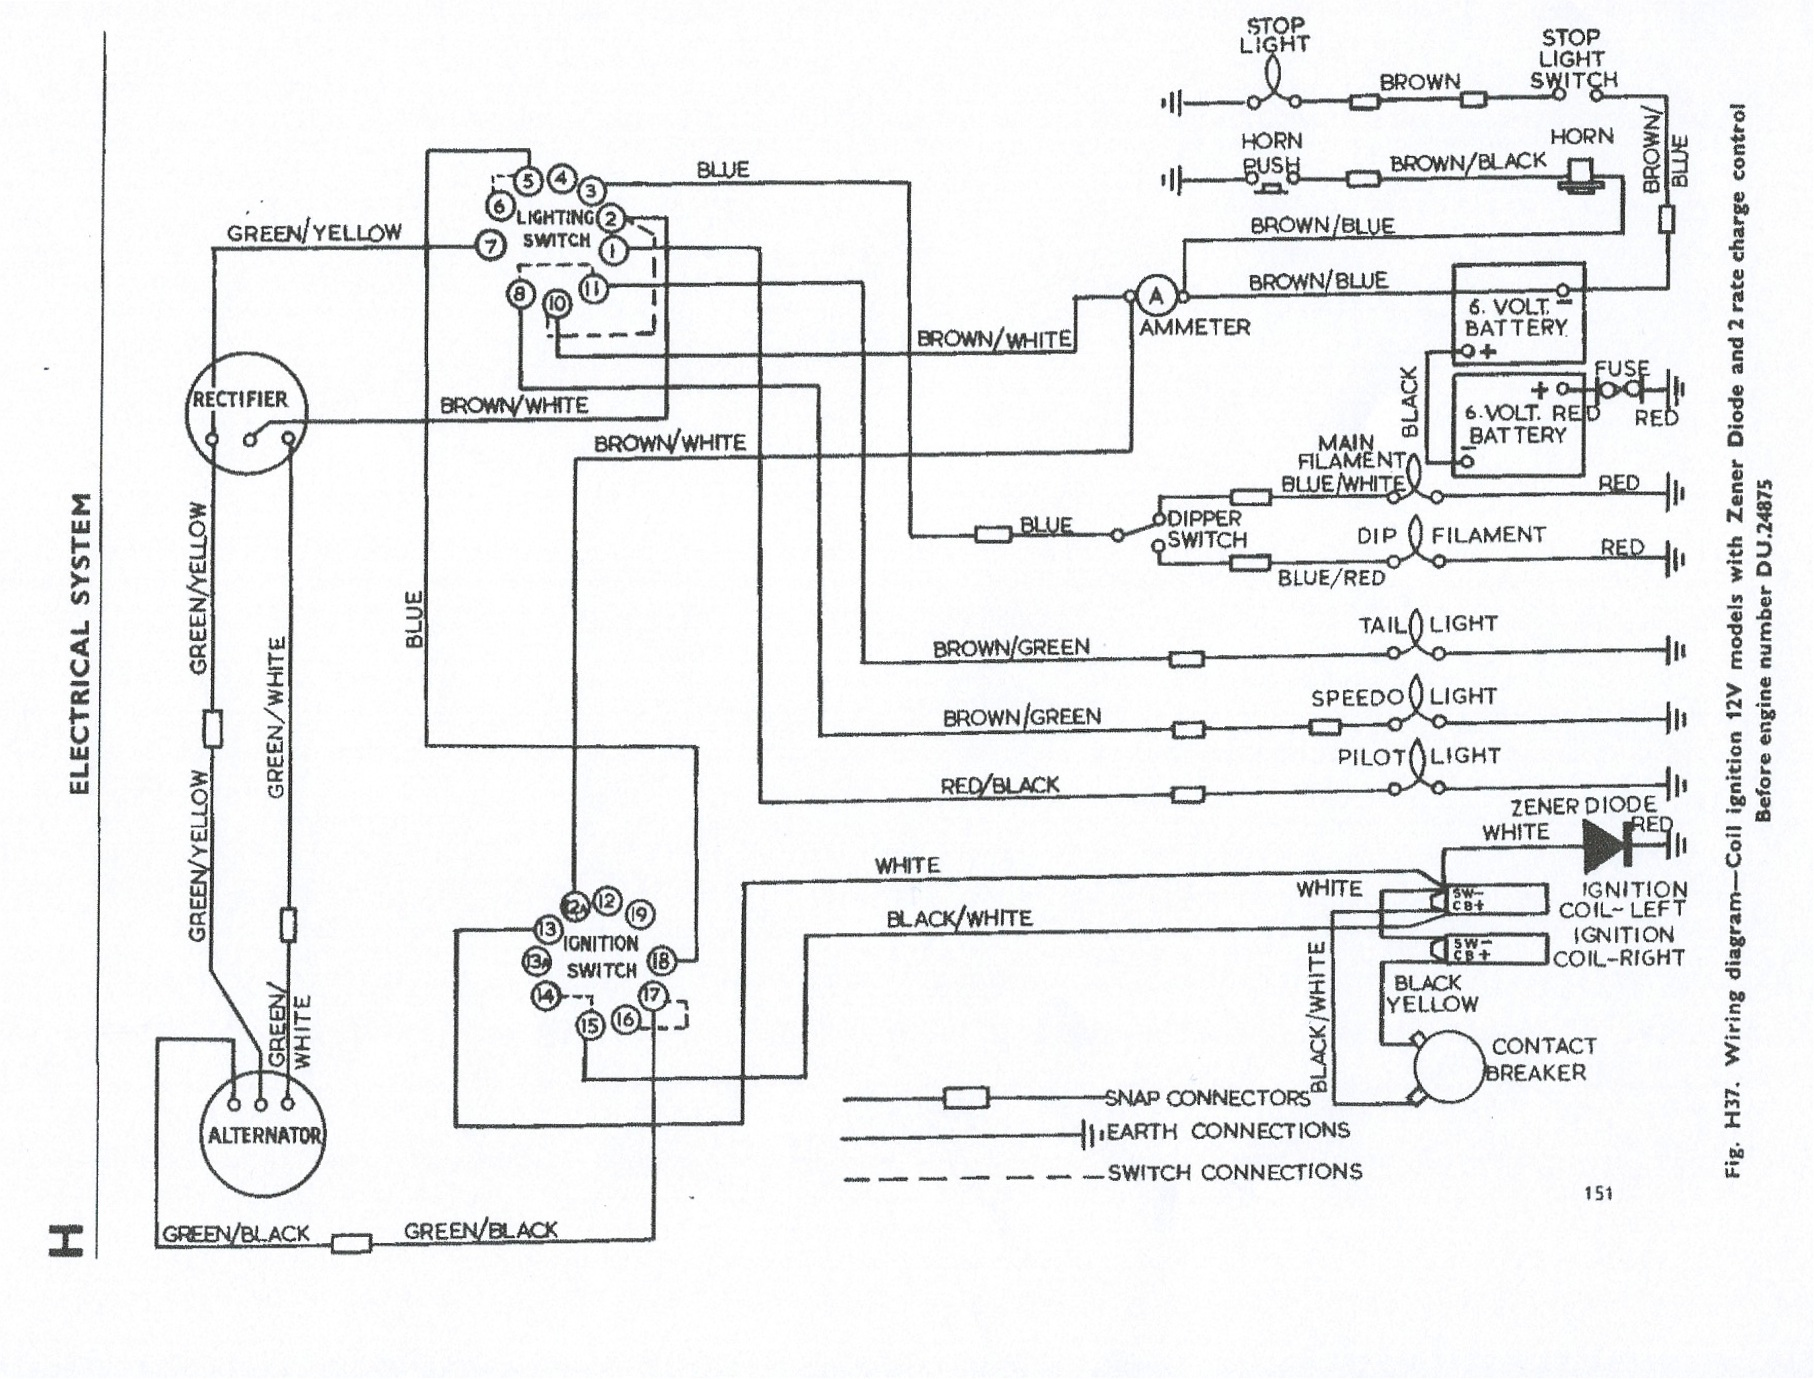 1971 Triumph Bonneville Wiring Harness Another Blog About 1978 Spitfire Diagram Database Rh Visitlittlerock Org